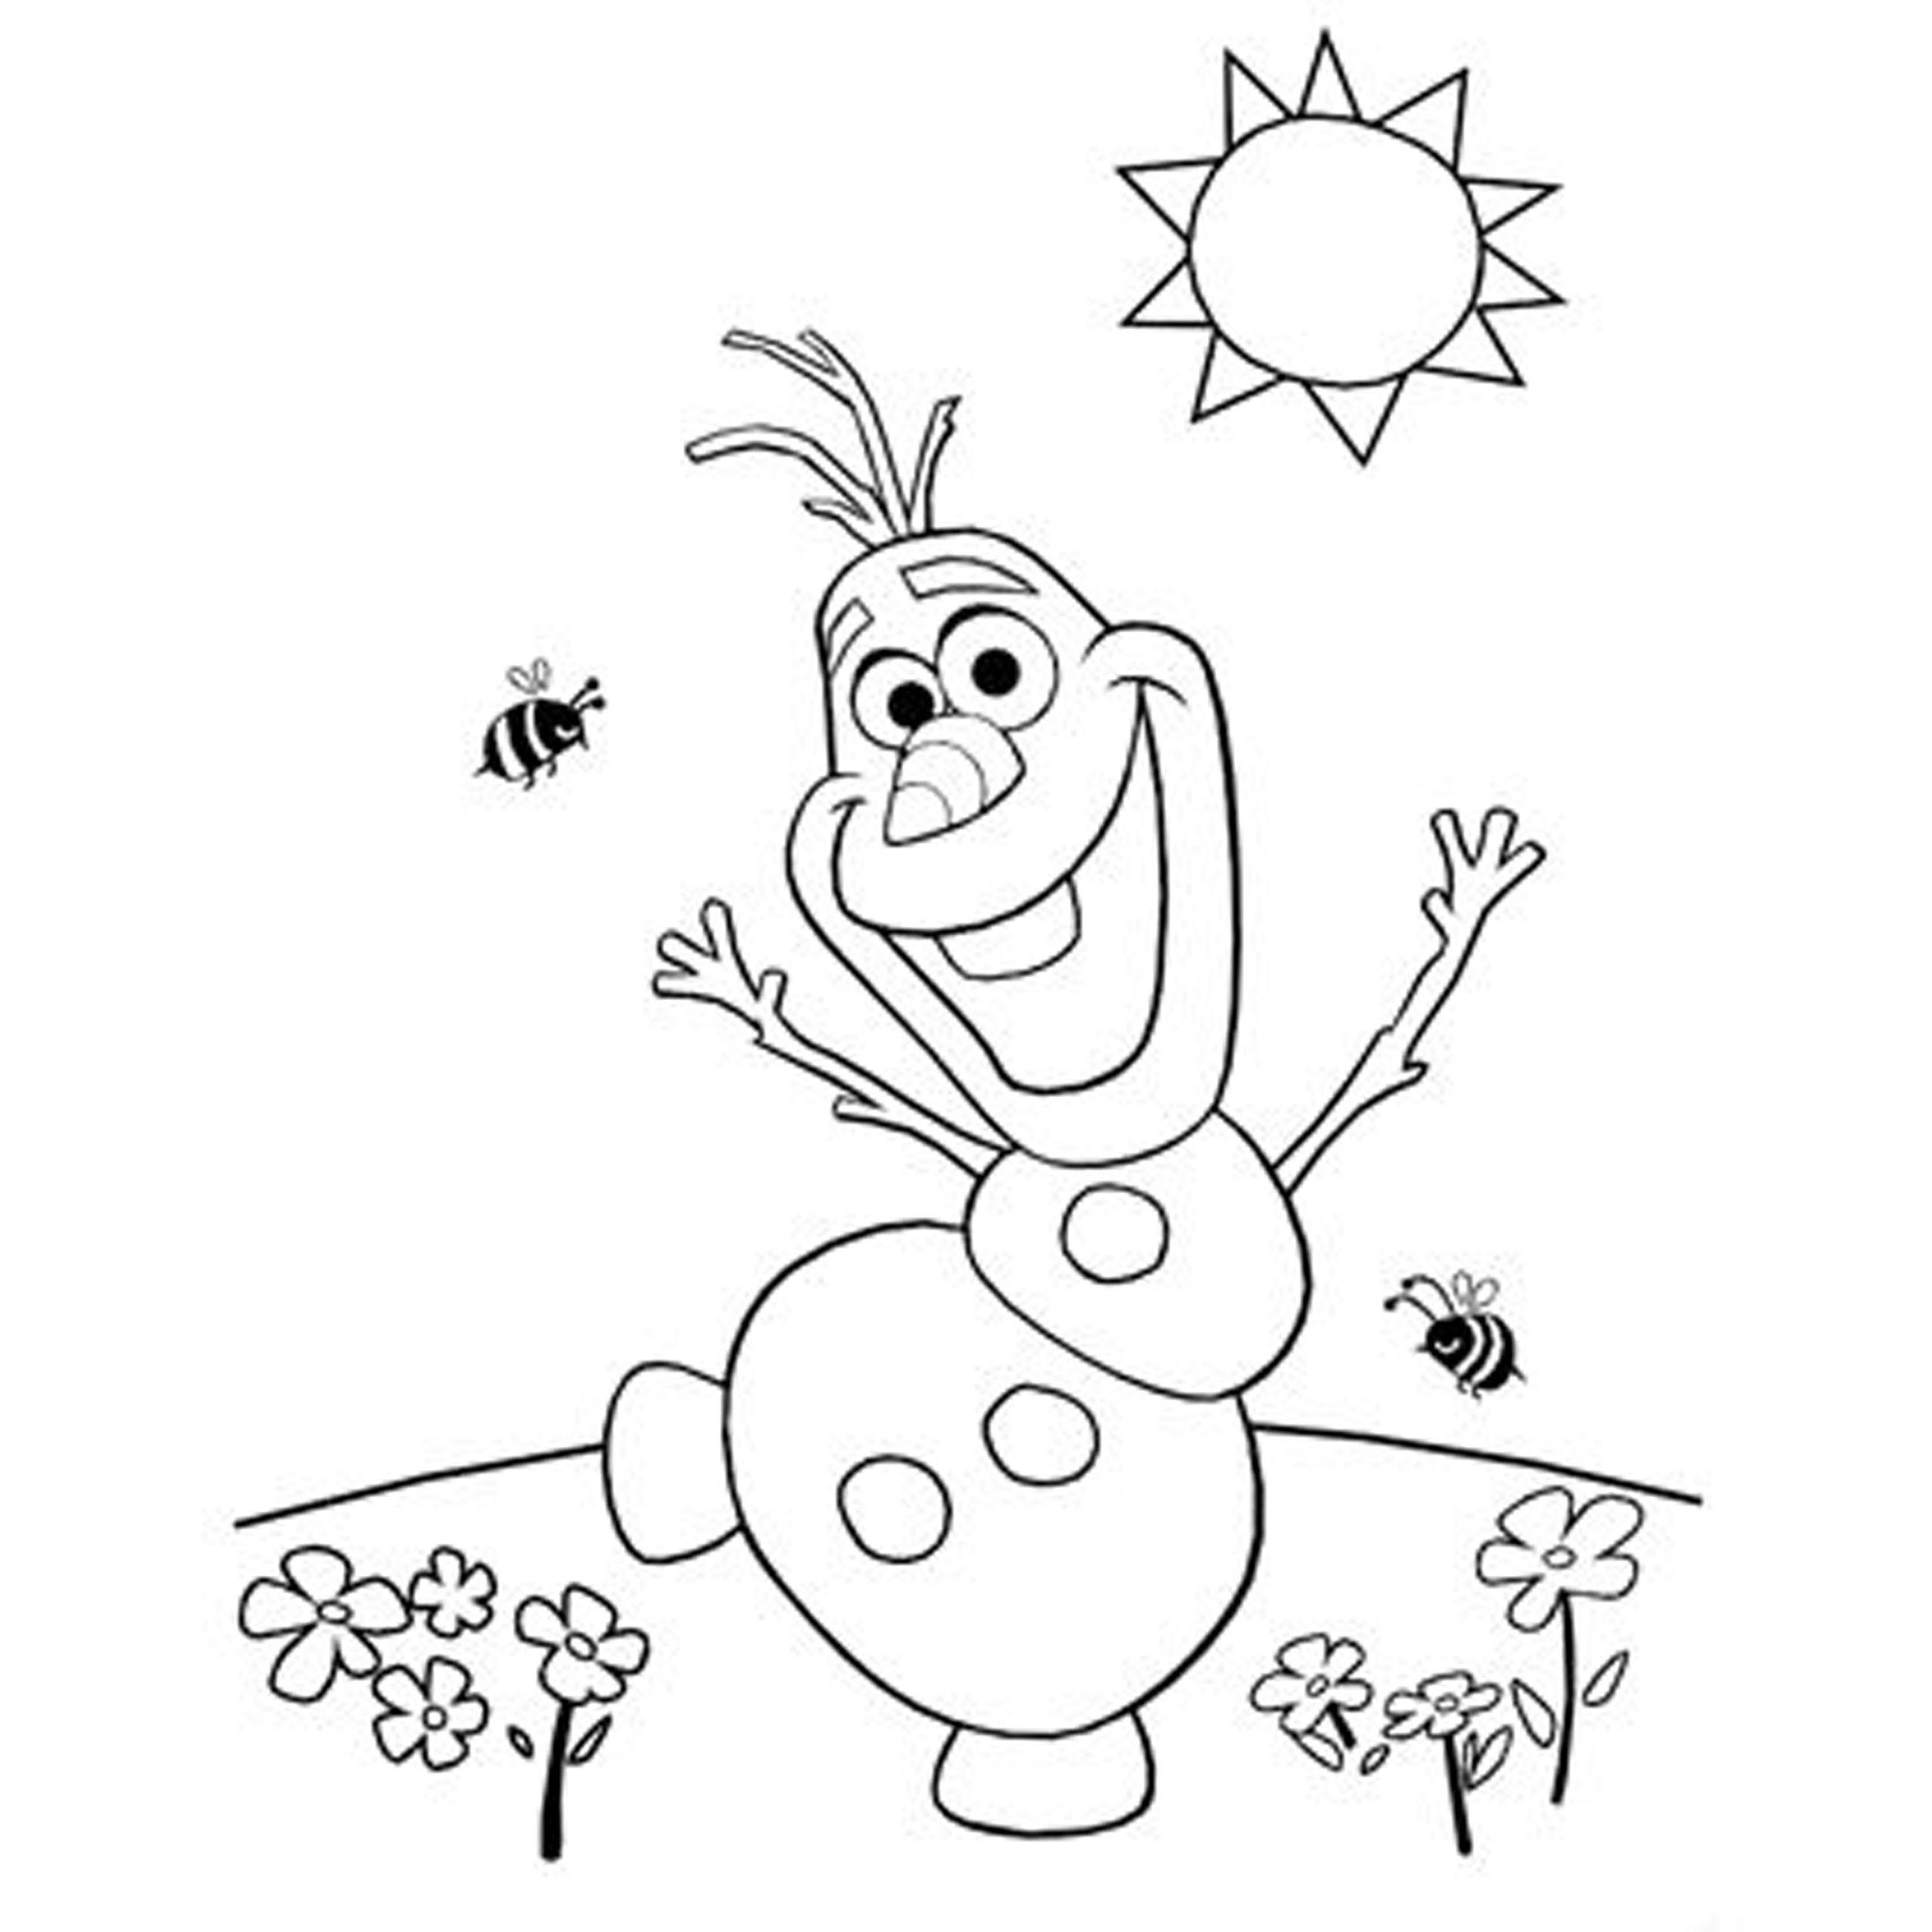 frozen olaf coloring pages coloring pictures of olaf from frozen coloring pages olaf pages coloring frozen